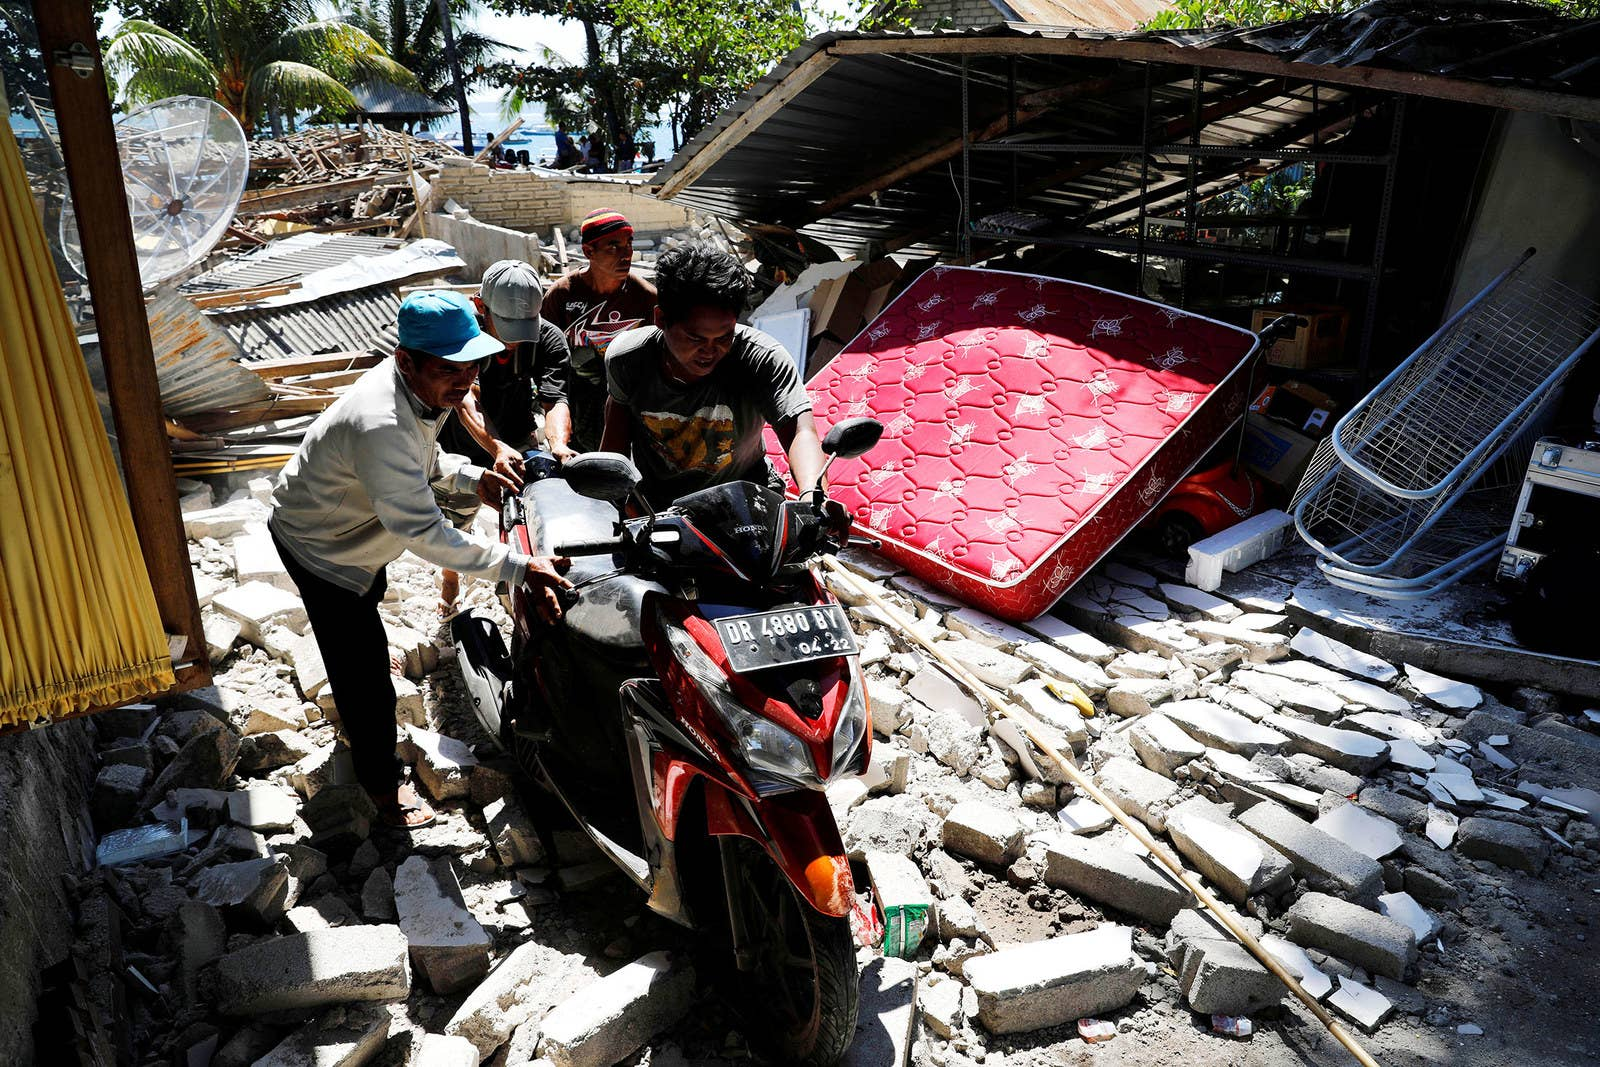 Villagers push a motorcycle through ruins in Pamenang.